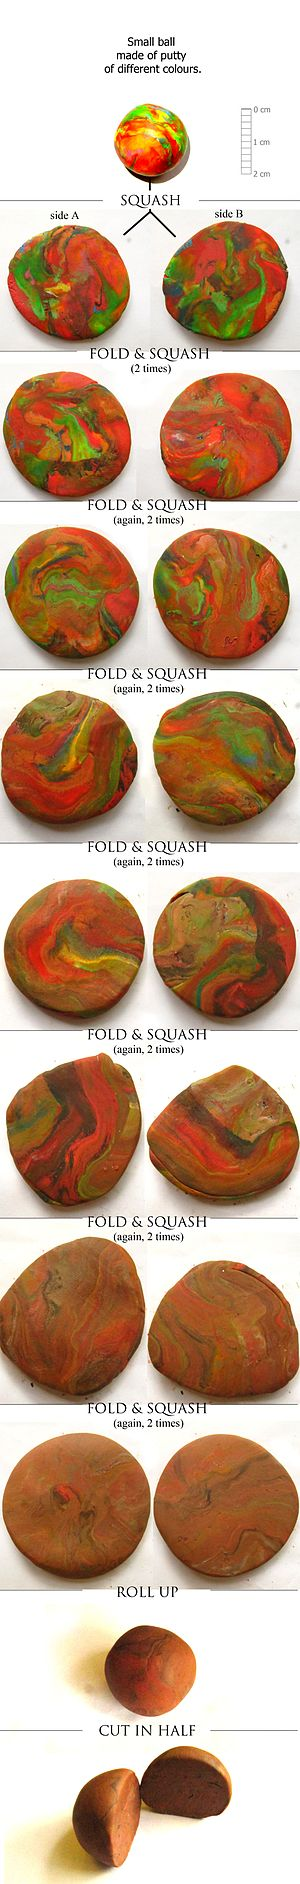 Horseshoe map - Mixing in a real ball of colored putty after consecutive iterations of Smale horseshoe map